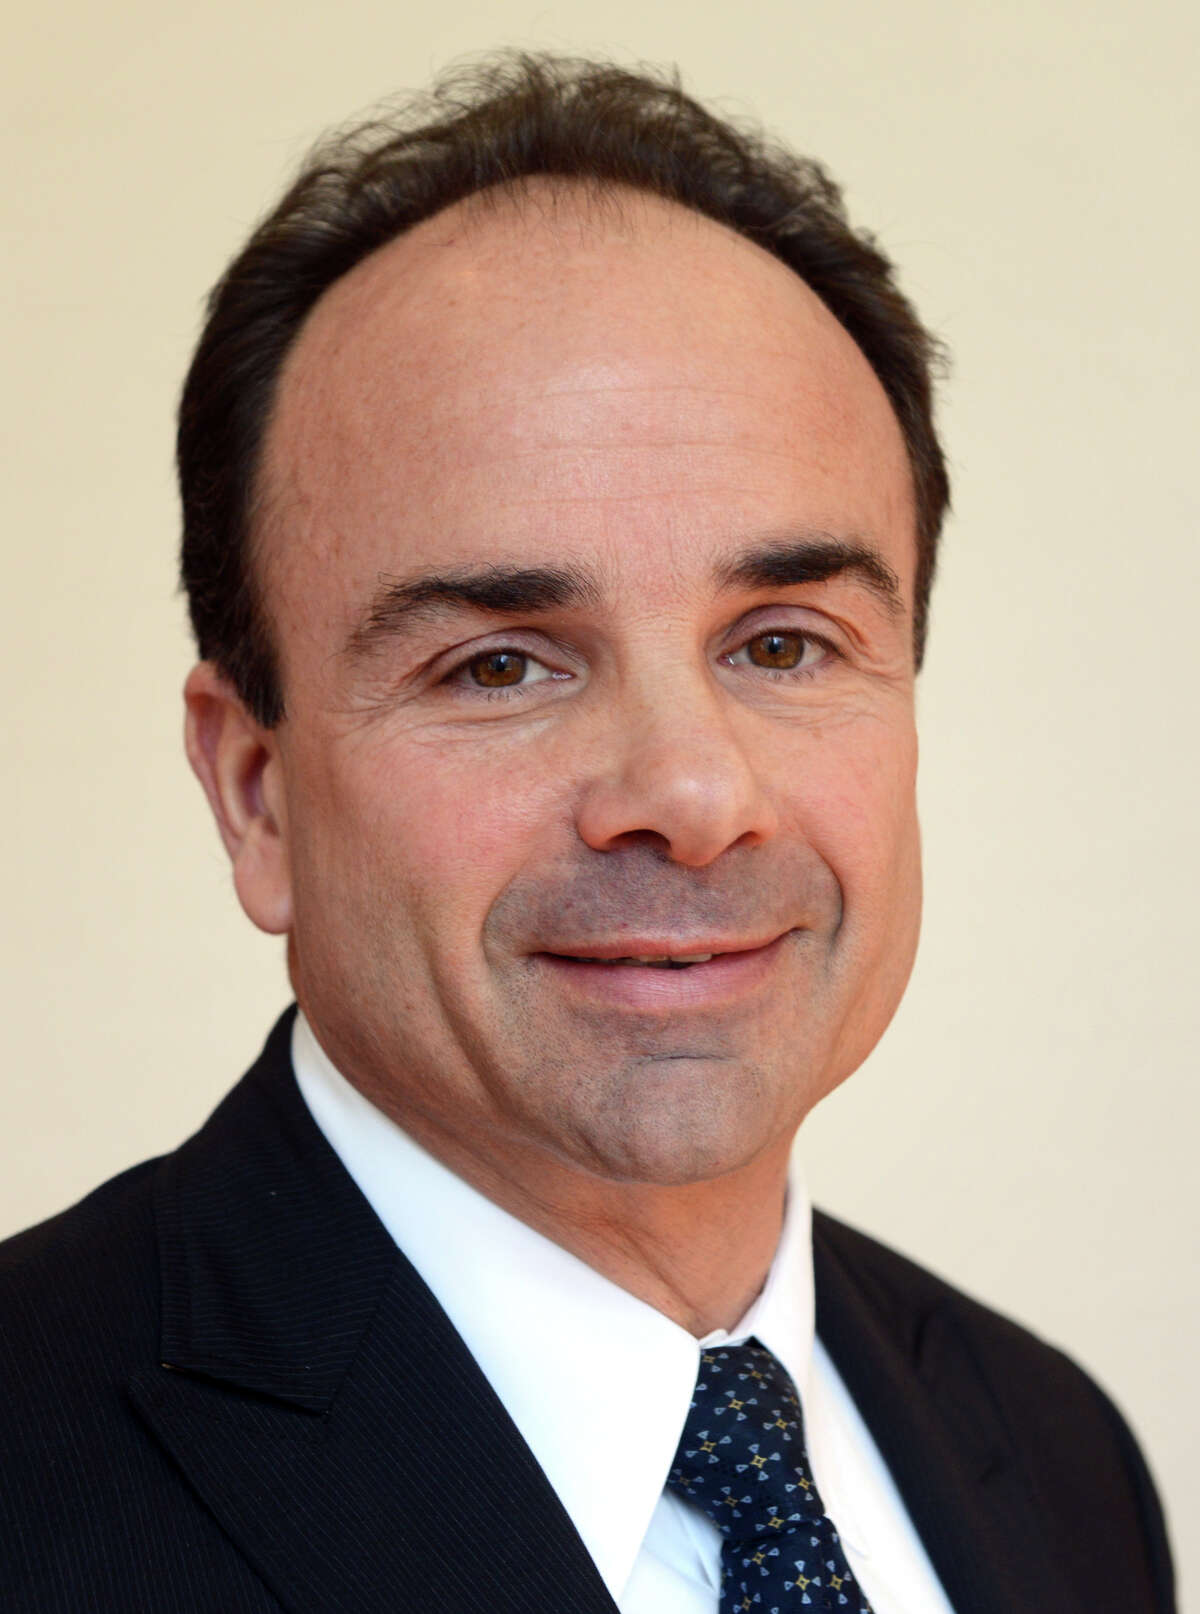 Bridgeport Mayor Joe Ganim will be in Washington, D.C. on Thursday for the winter meeting of the U.S. Conference of Mayors.